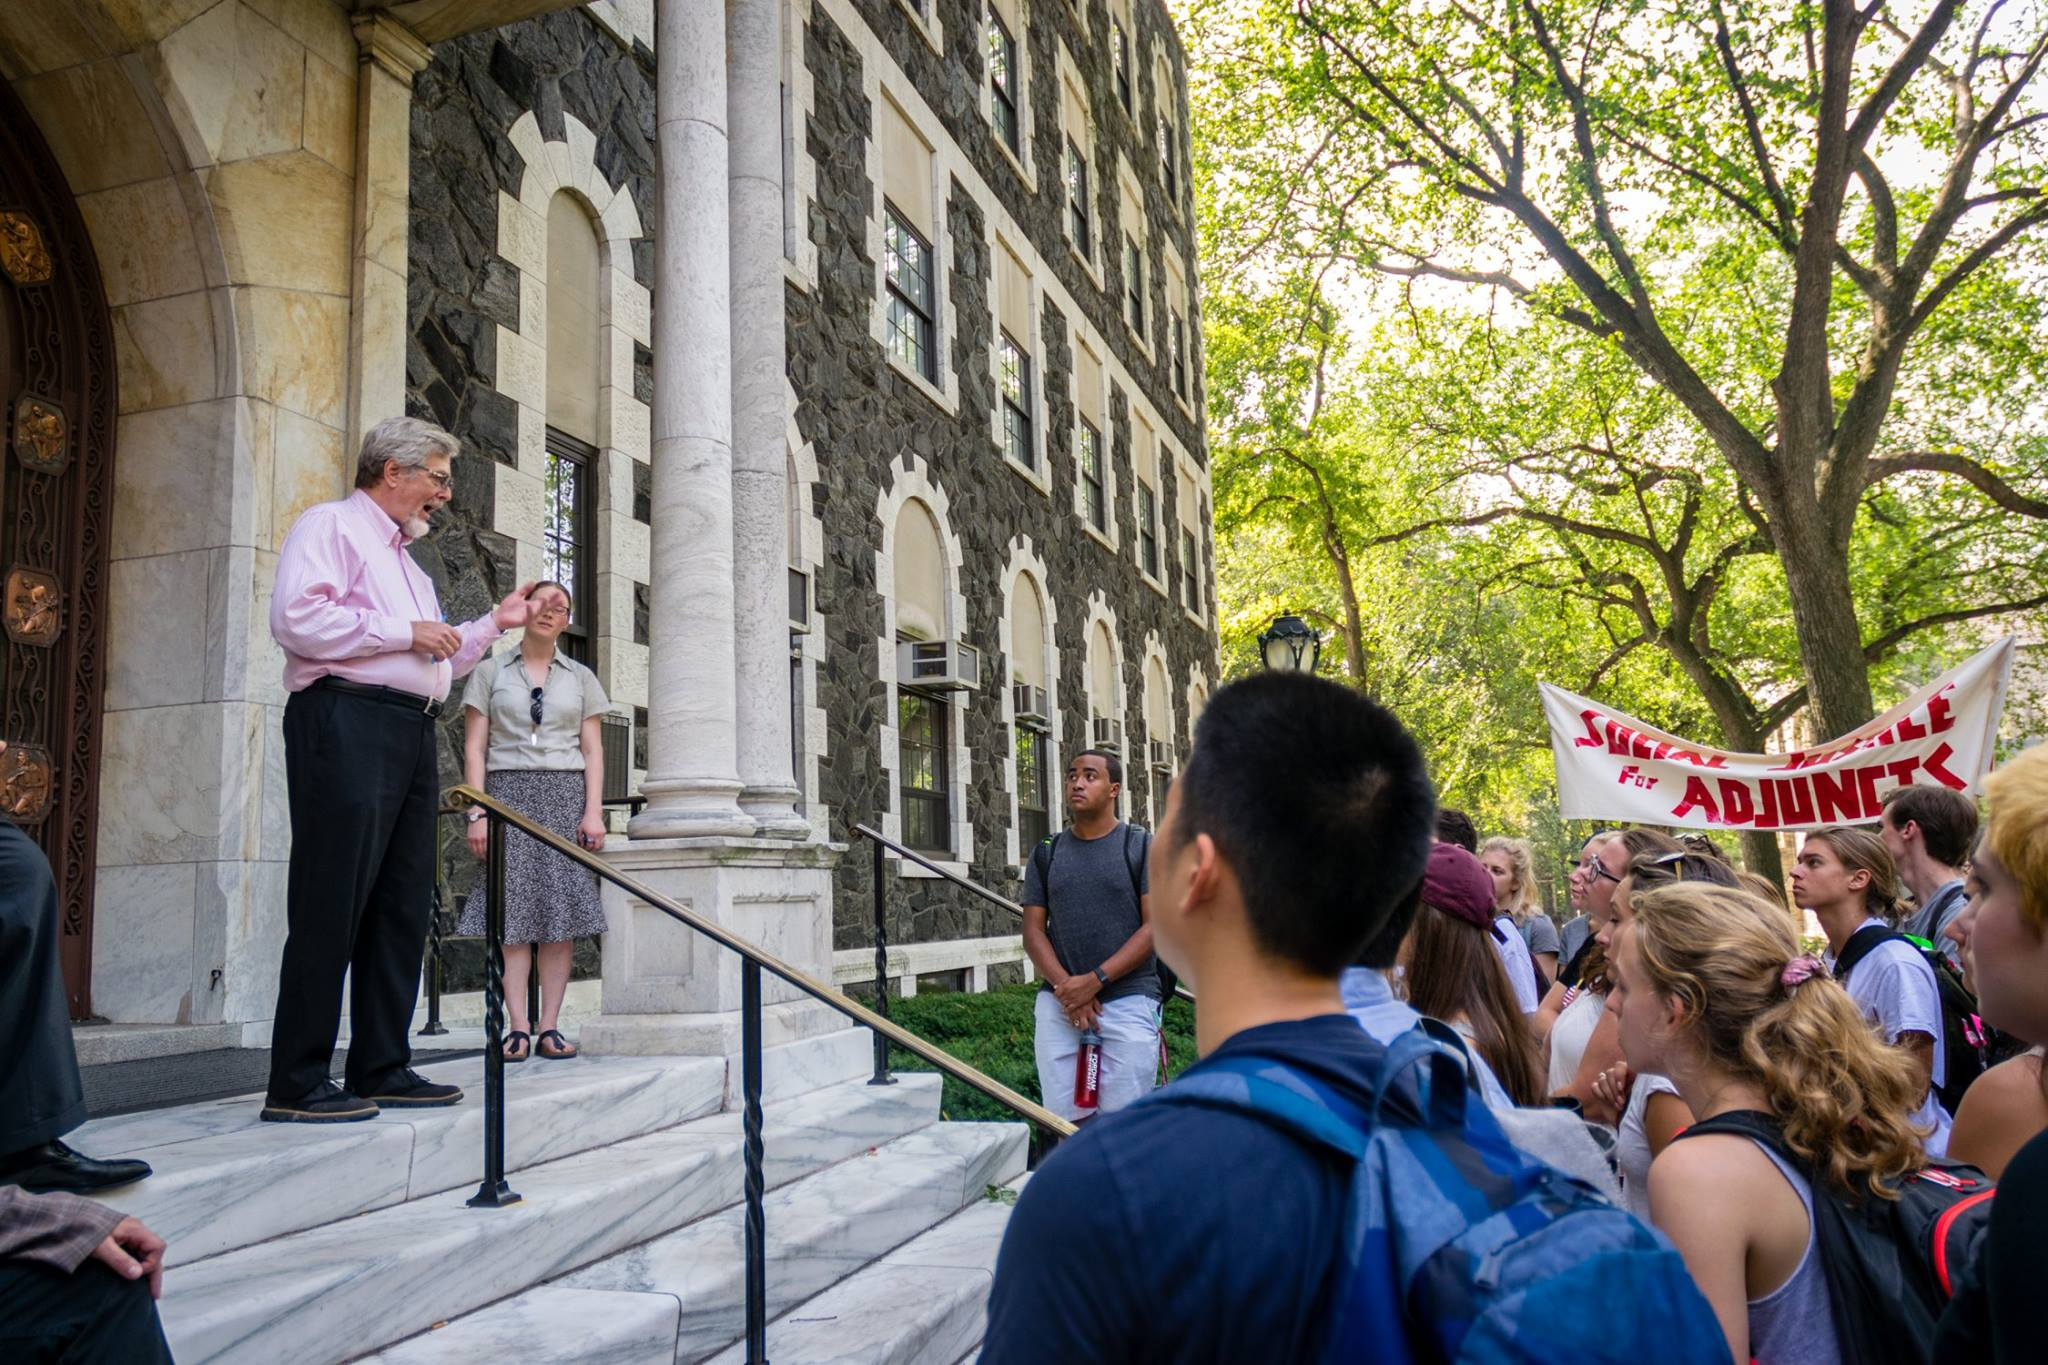 Fordham needs to meet the needs of its faculty to avoid LIU Brooklyn's current situation. (Andrea Garcia/The Fordham Ram)